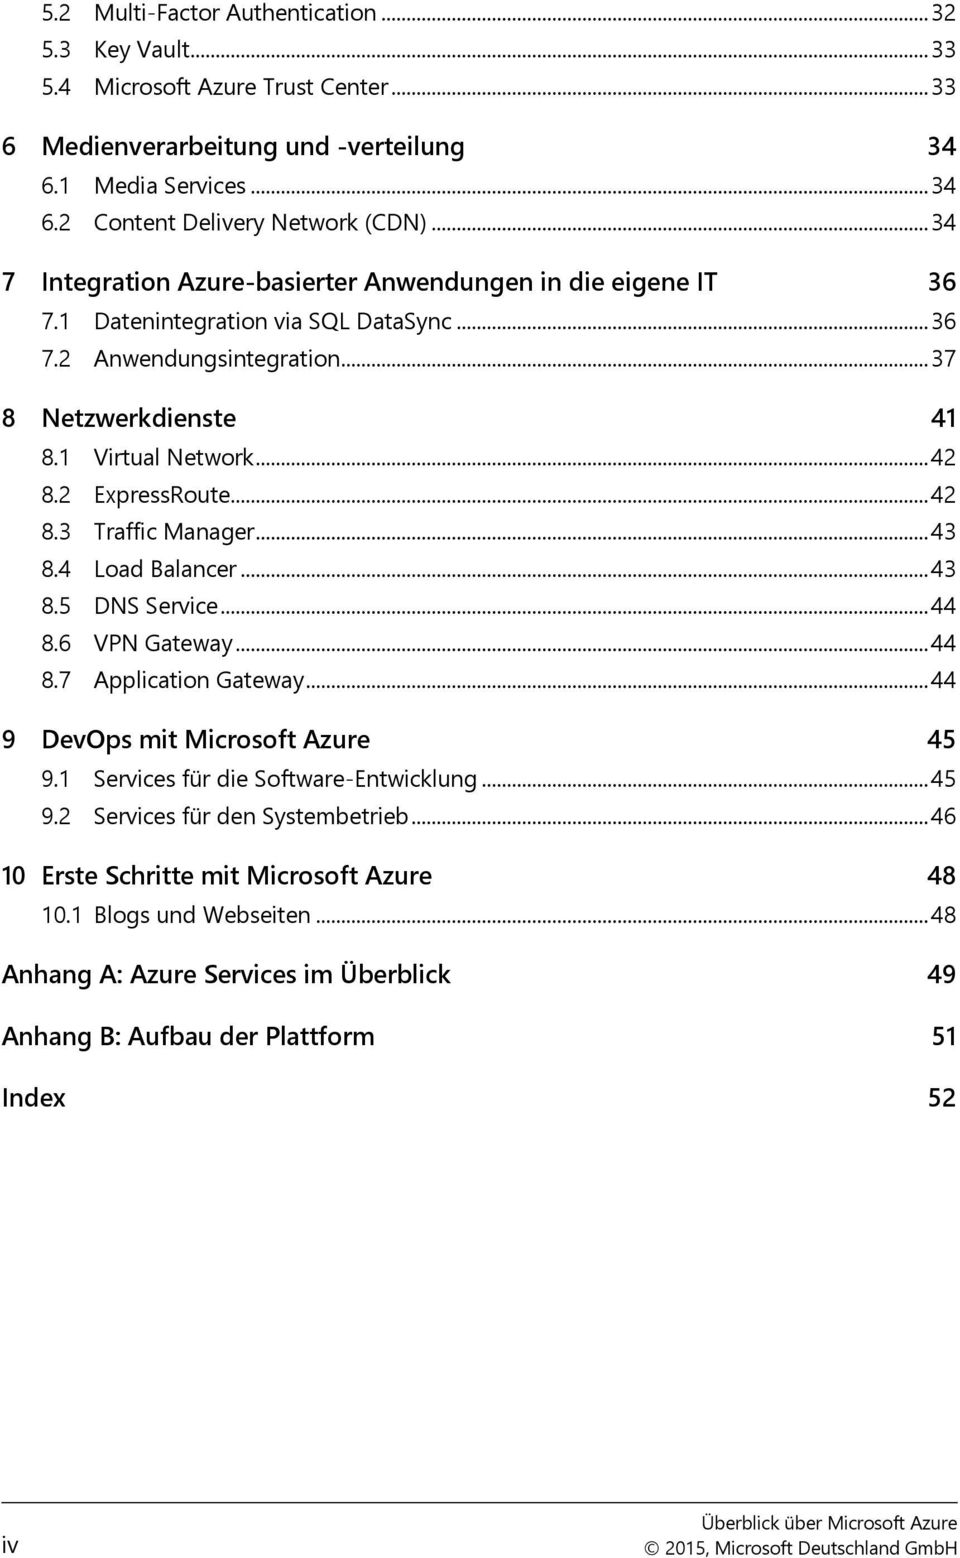 2 ExpressRoute... 42 8.3 Traffic Manager... 43 8.4 Load Balancer... 43 8.5 DNS Service... 44 8.6 VPN Gateway... 44 8.7 Application Gateway... 44 9 DevOps mit Microsoft Azure 45 9.